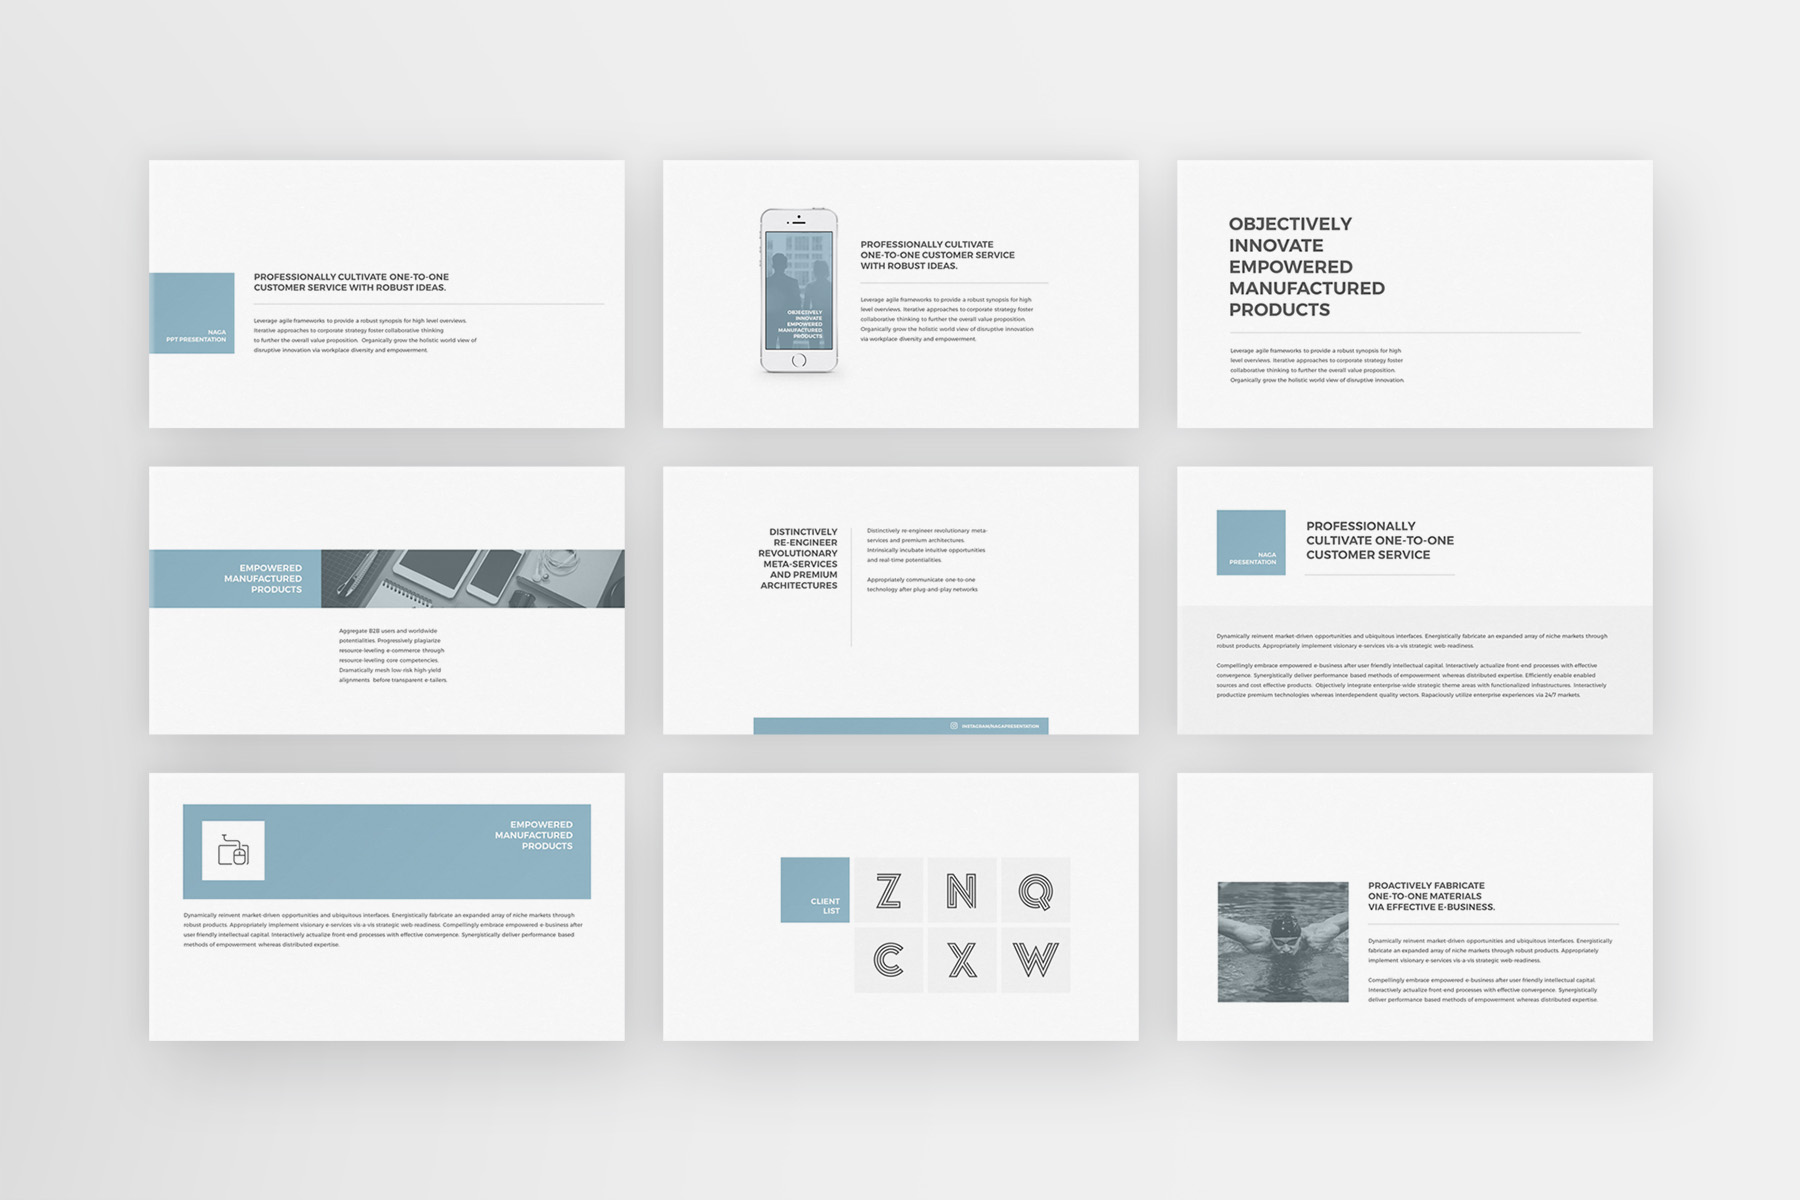 Naga - PowerPoint Template example image 5